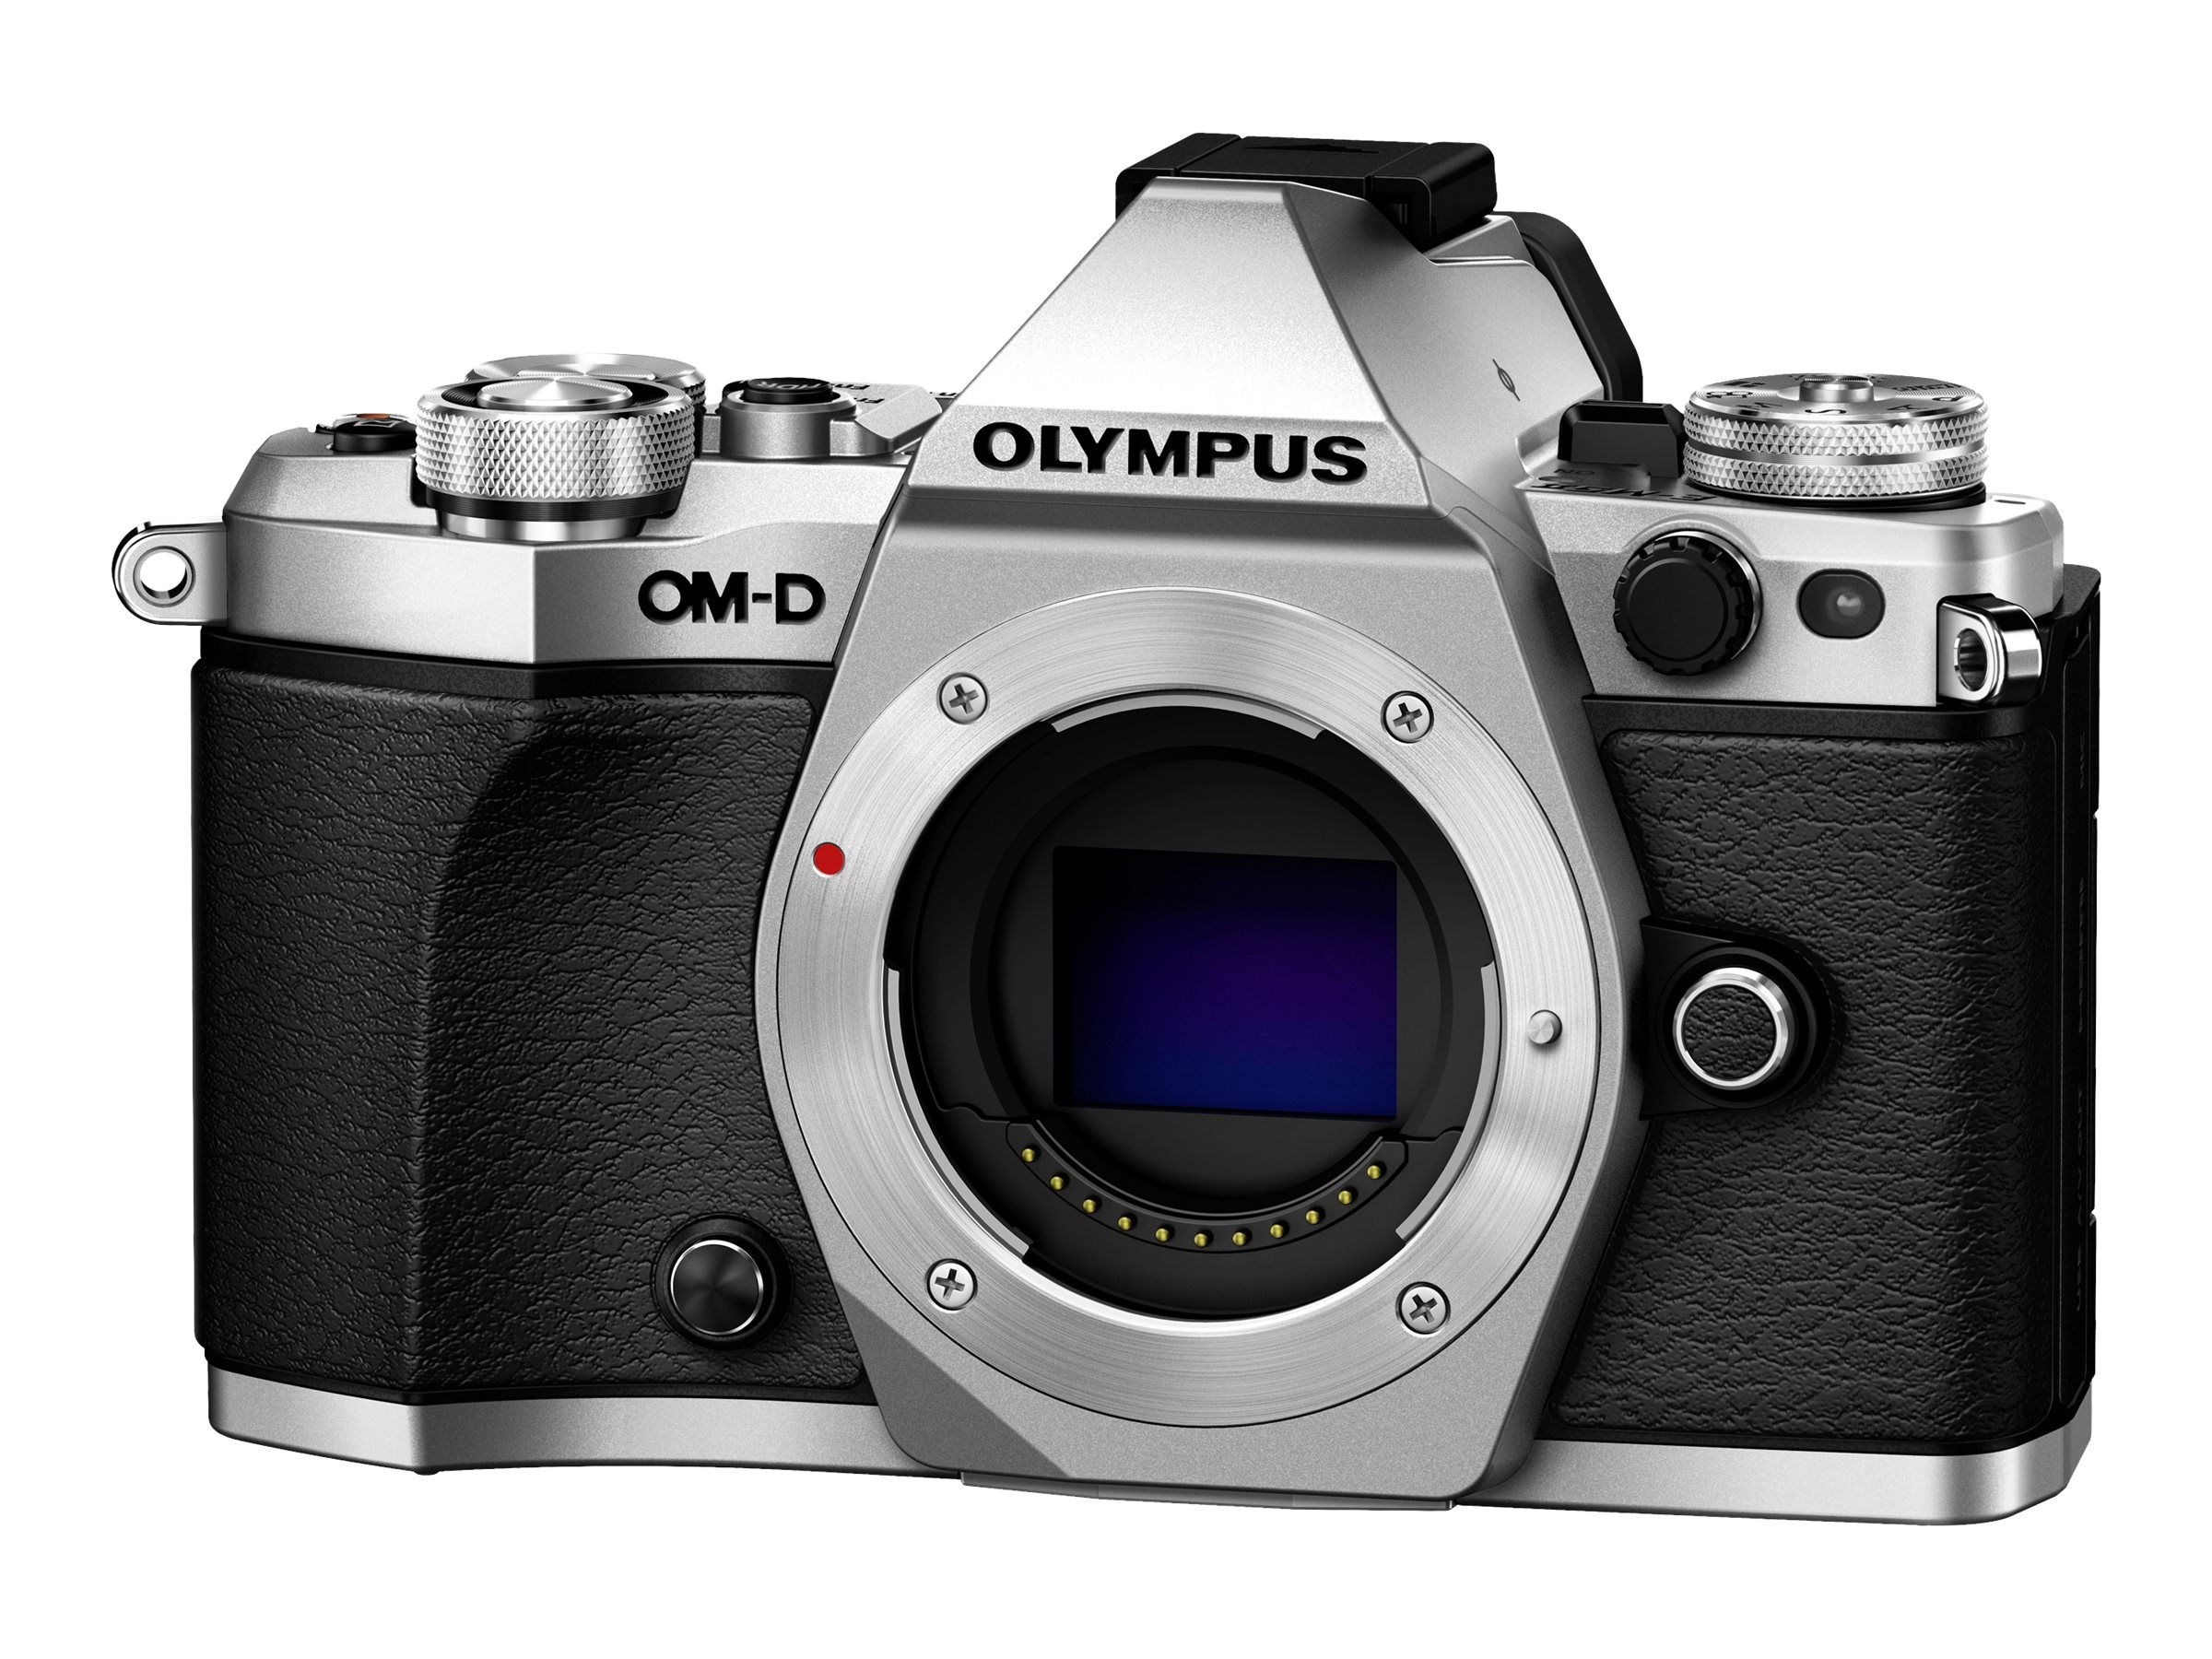 Olympus OM-D E-M5 Mark II Mirrorless Micro Four Thirds Digital Camera, Silver (Body Only), V207040SU000